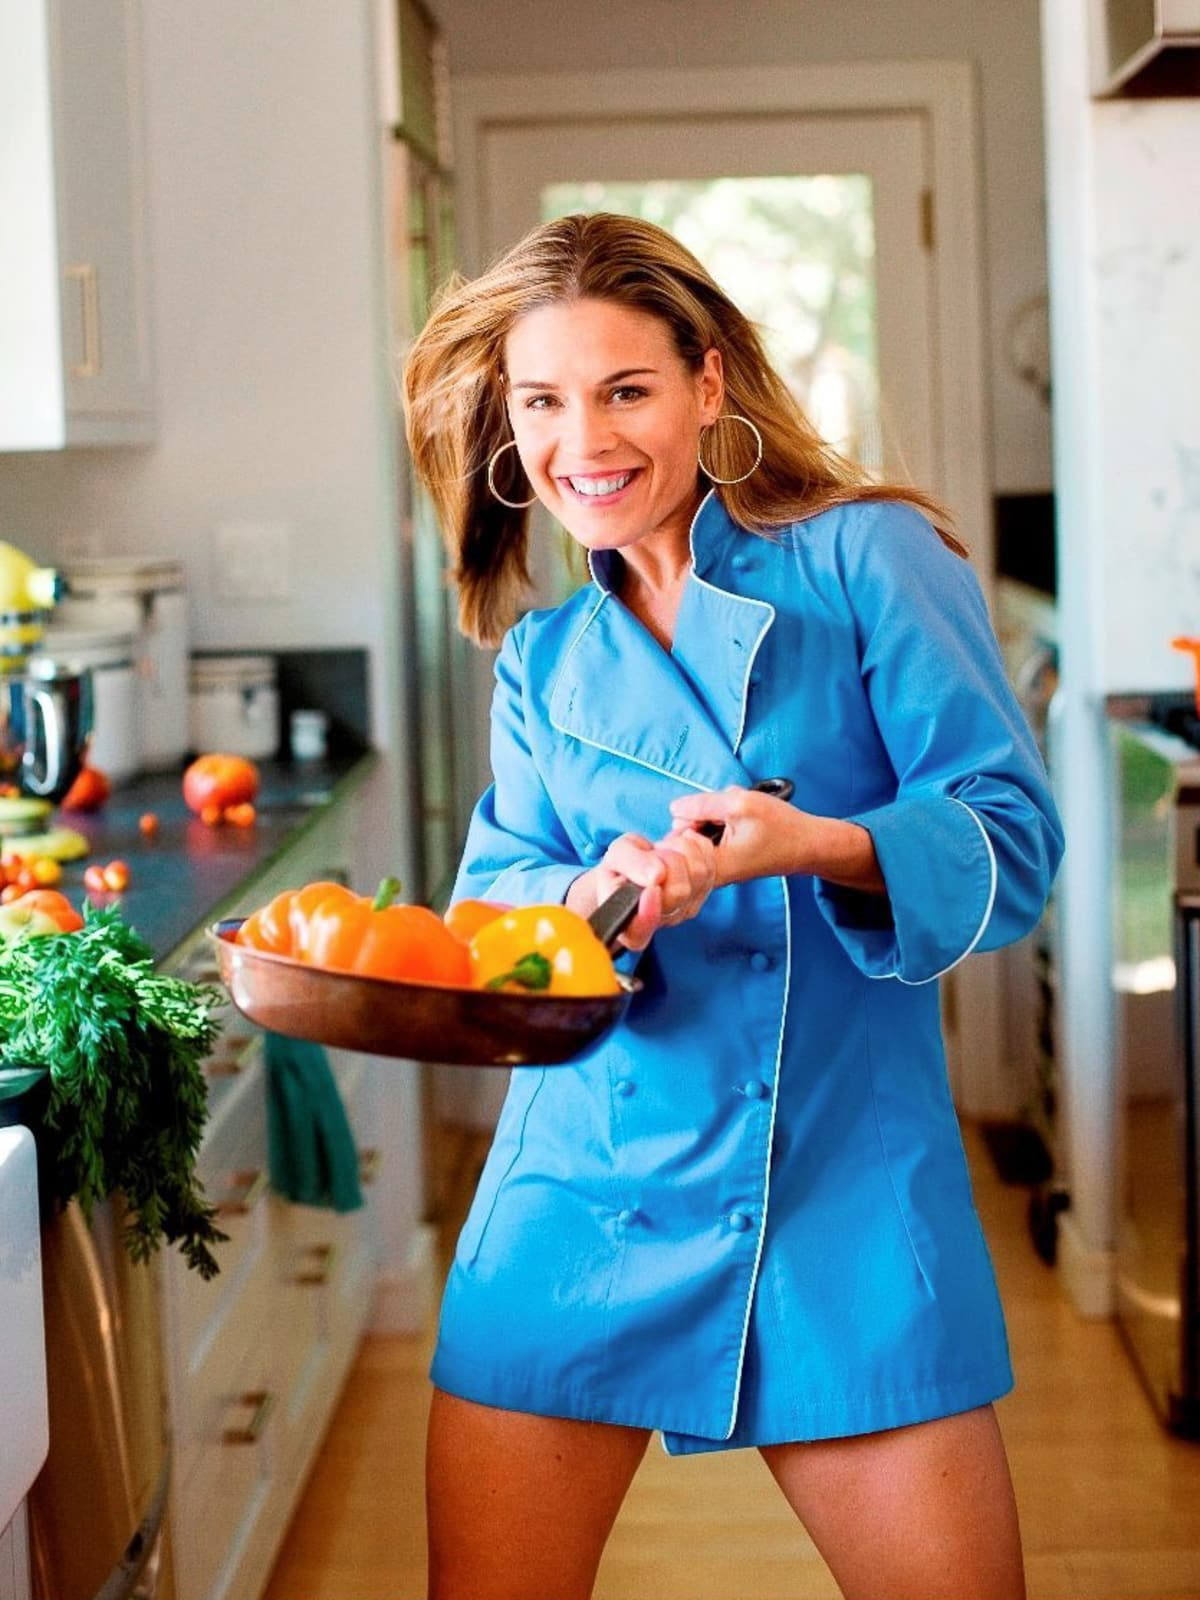 Food Network star Cat Cora flying into Houston to open a new restau ...